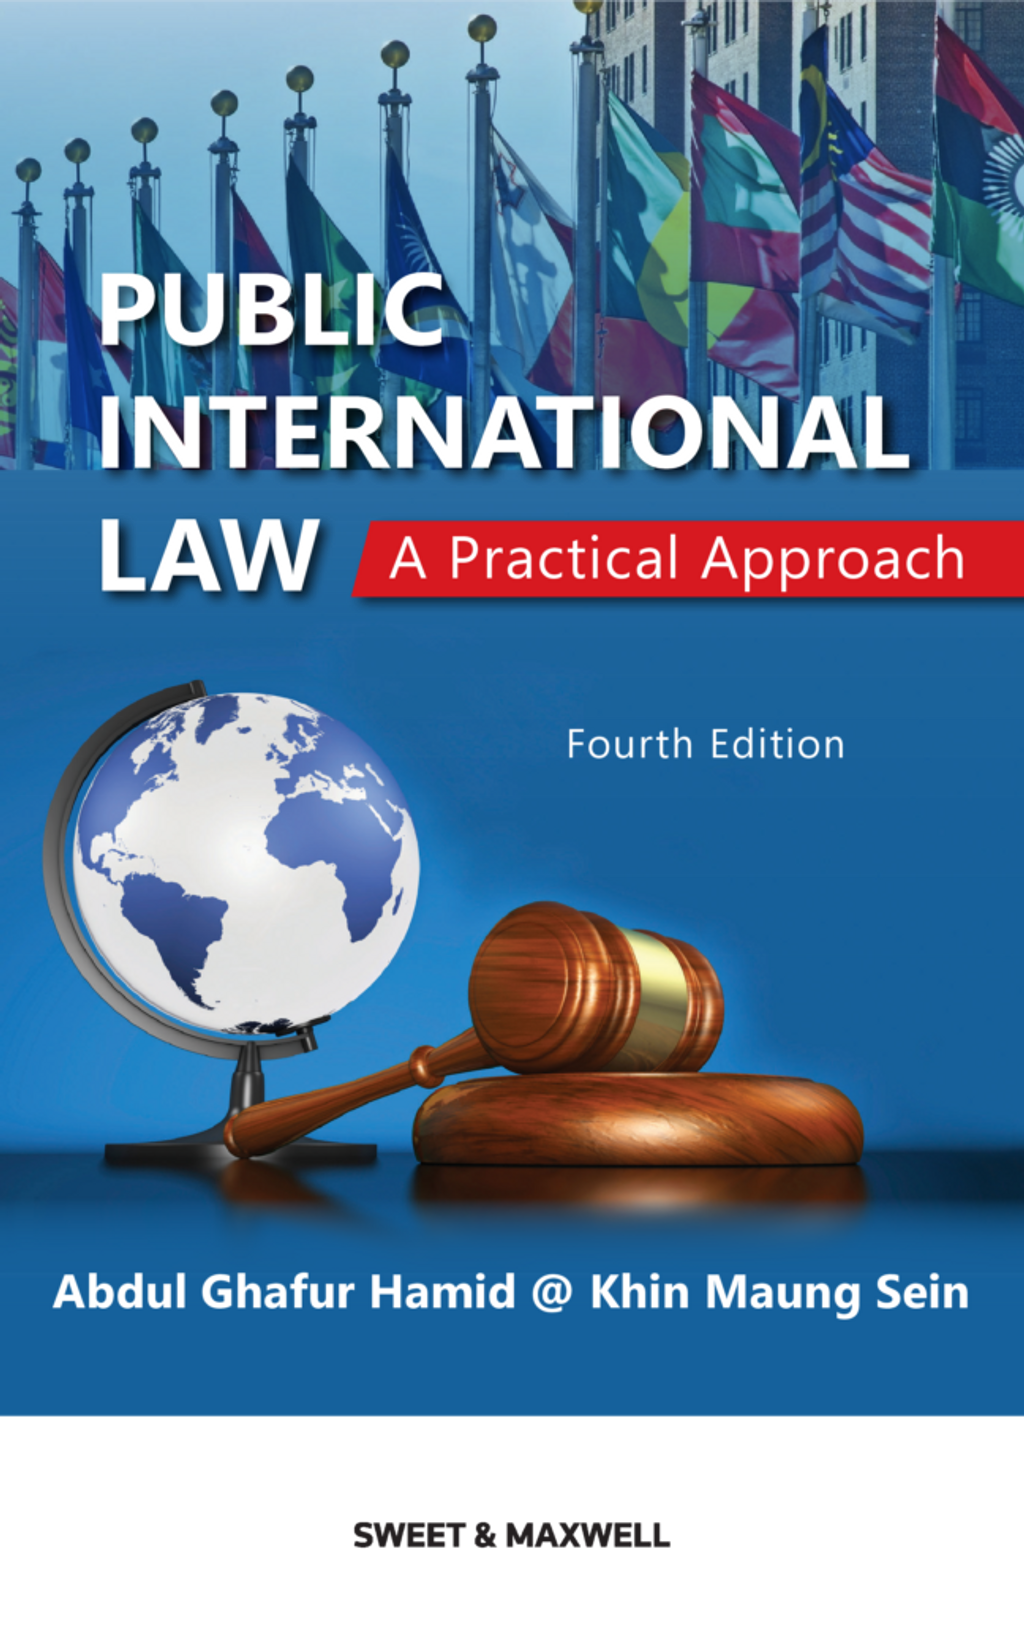 Public-International-Law-Cover-4th-Edn-Design-3-648x1043.png